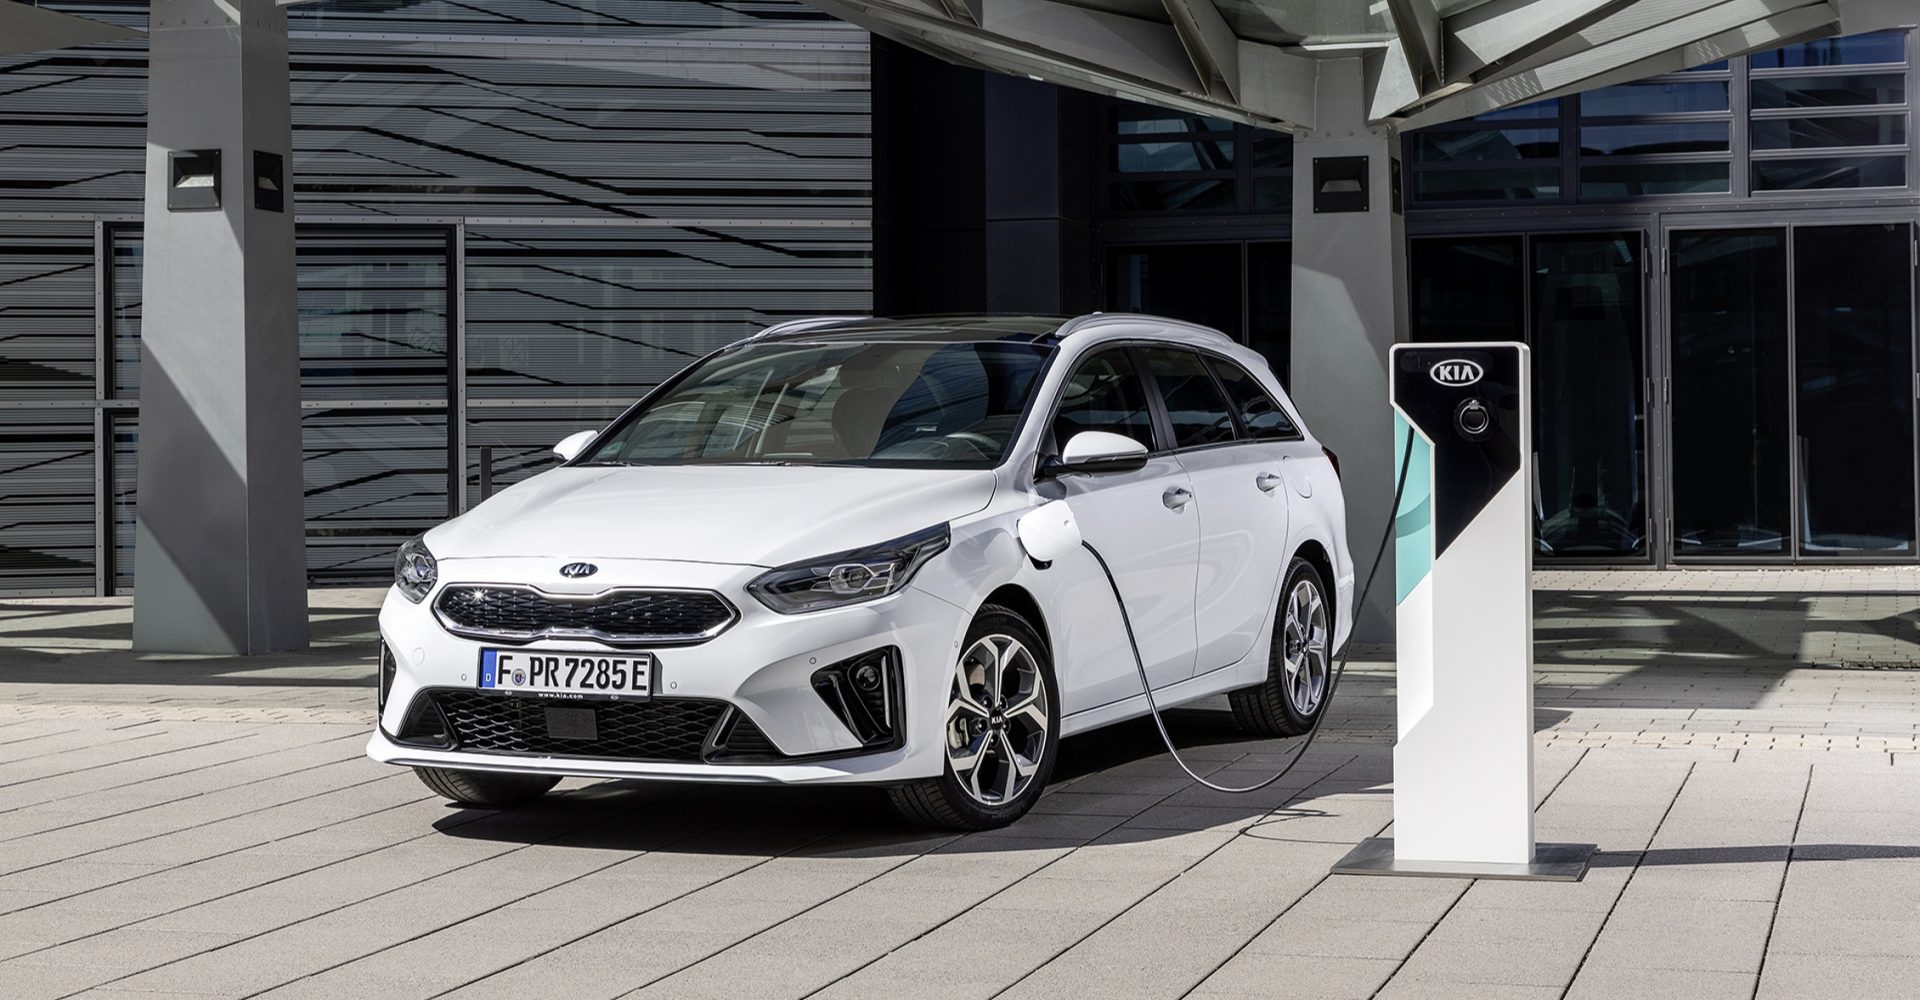 First Drive: The Kia Ceed SW PHEV brings a great mix of efficiency and practicality to the estate car class